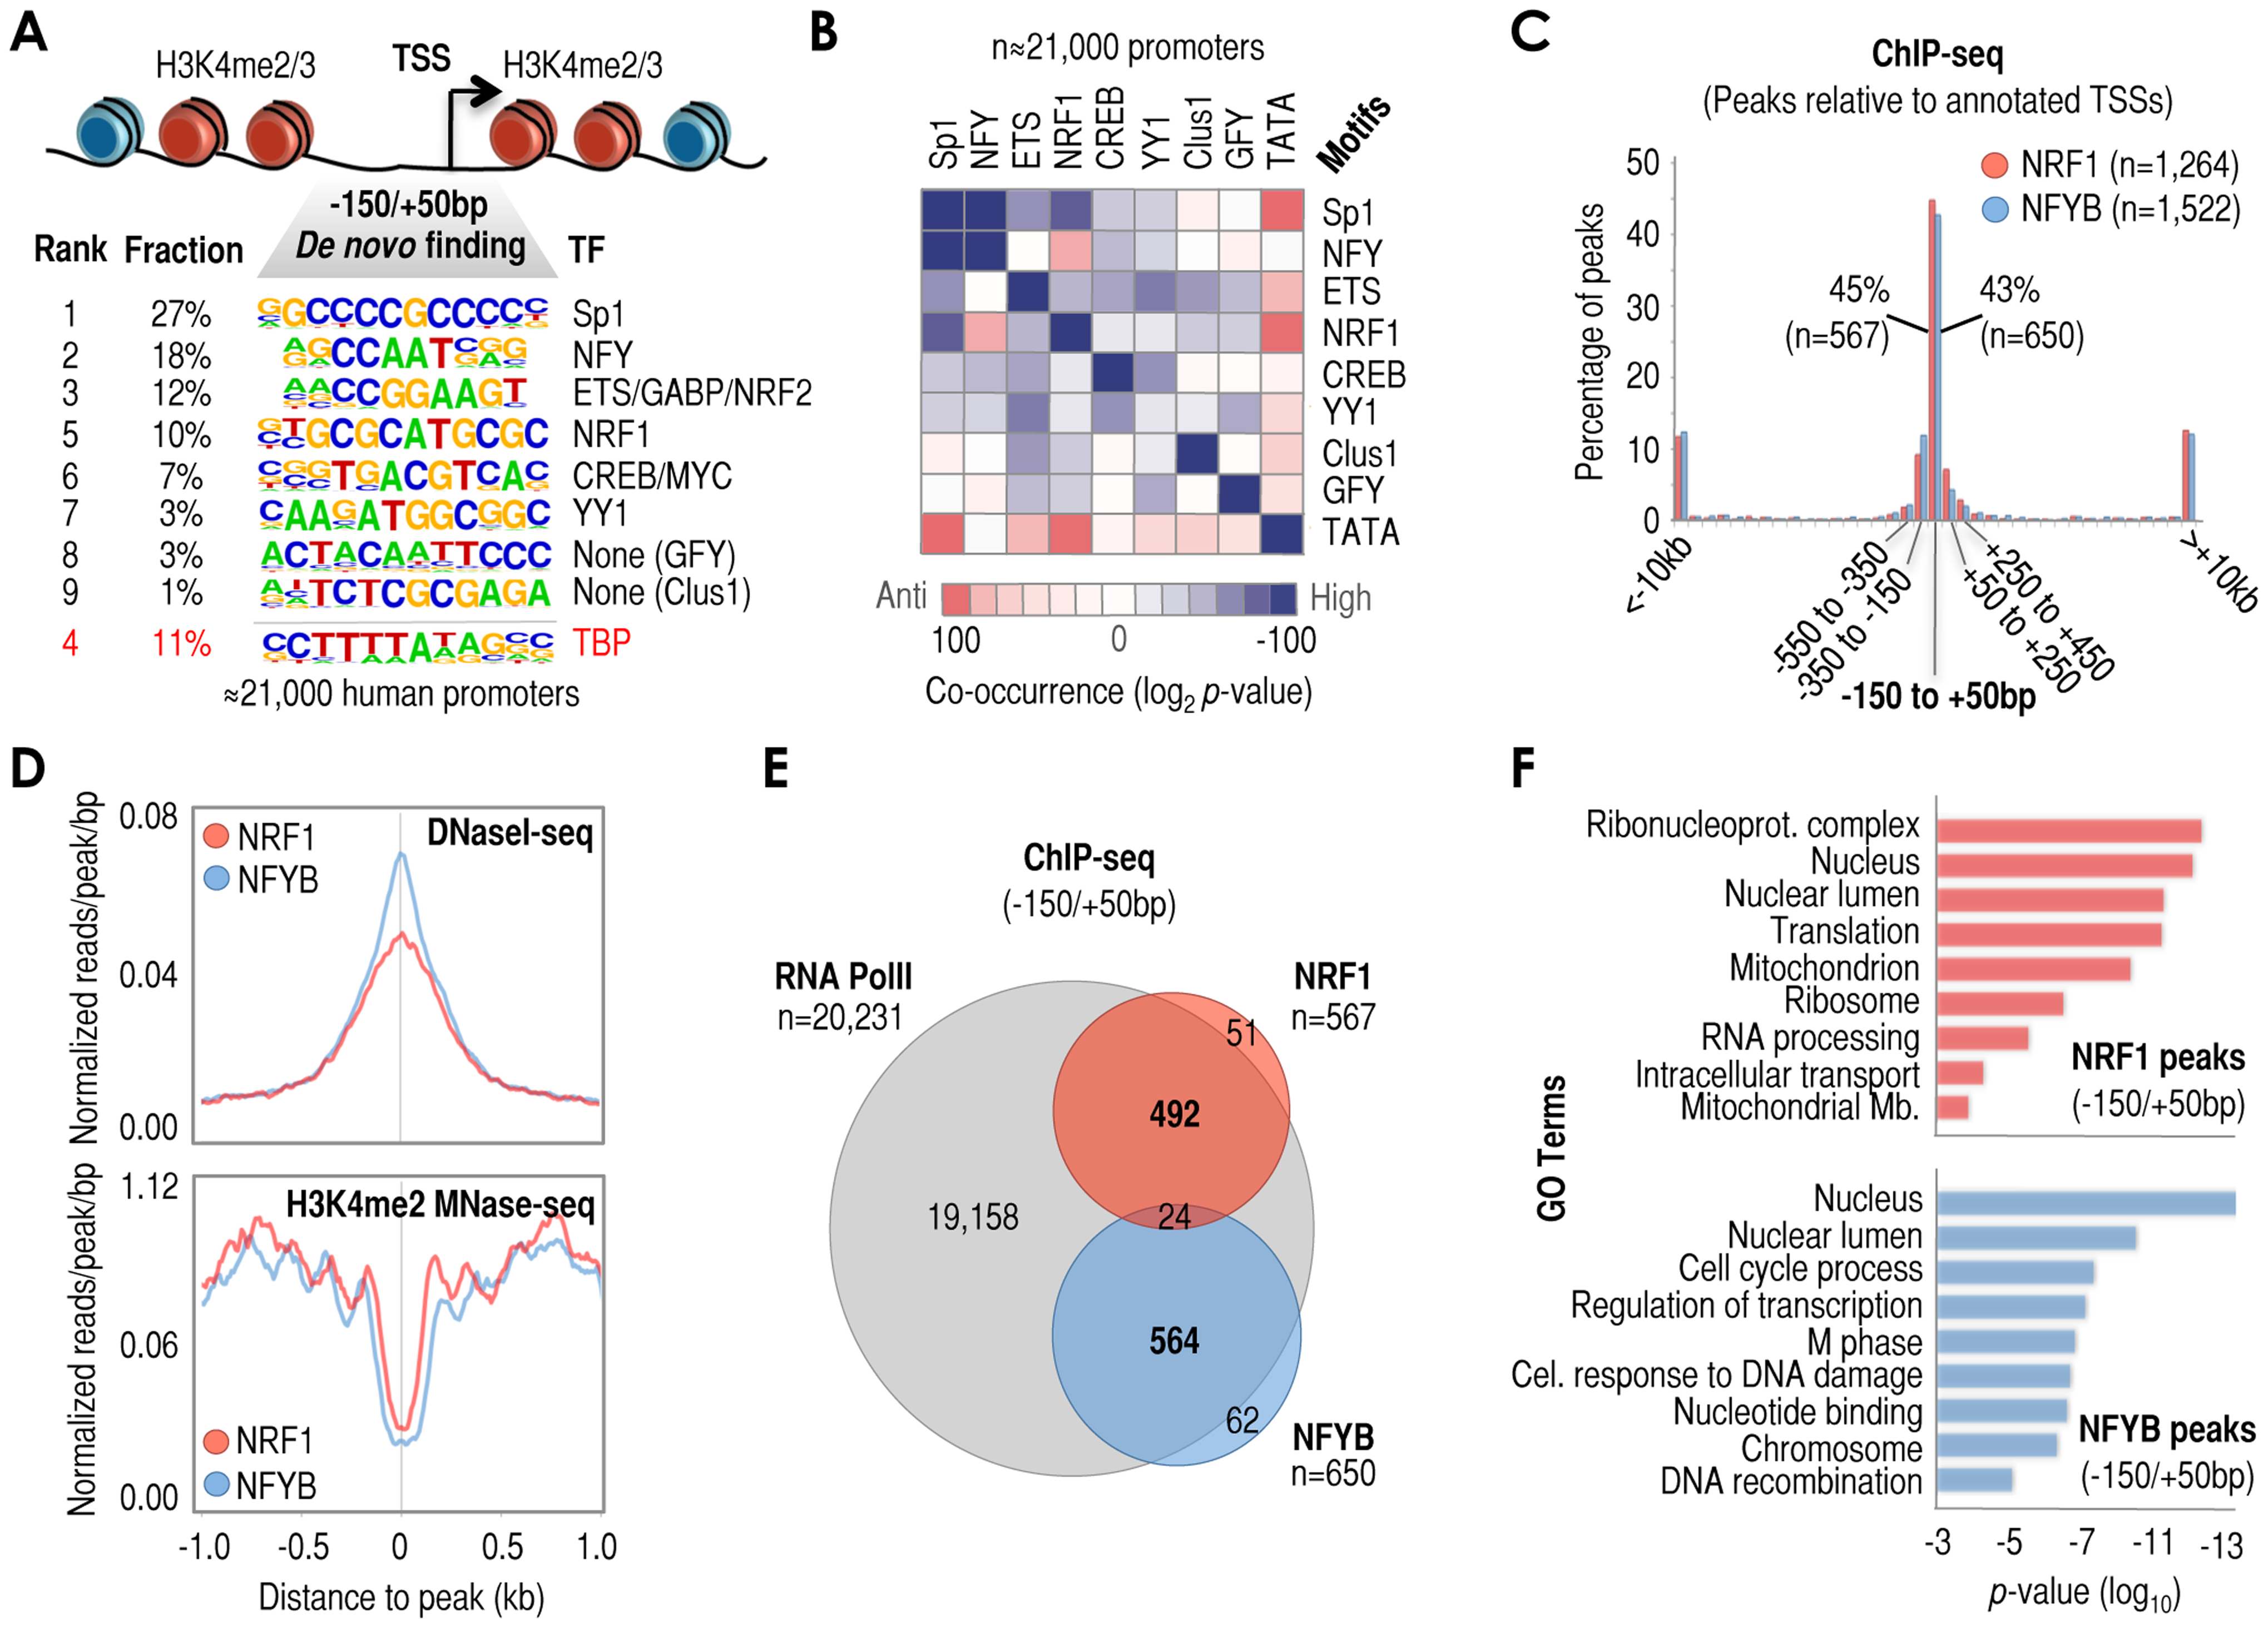 A series of cis-regulatory elements (here termed 'cardinal' motifs) are highly enriched at −150/+50 bp relative to TSS (+1) and may define different subsets of human promoters.